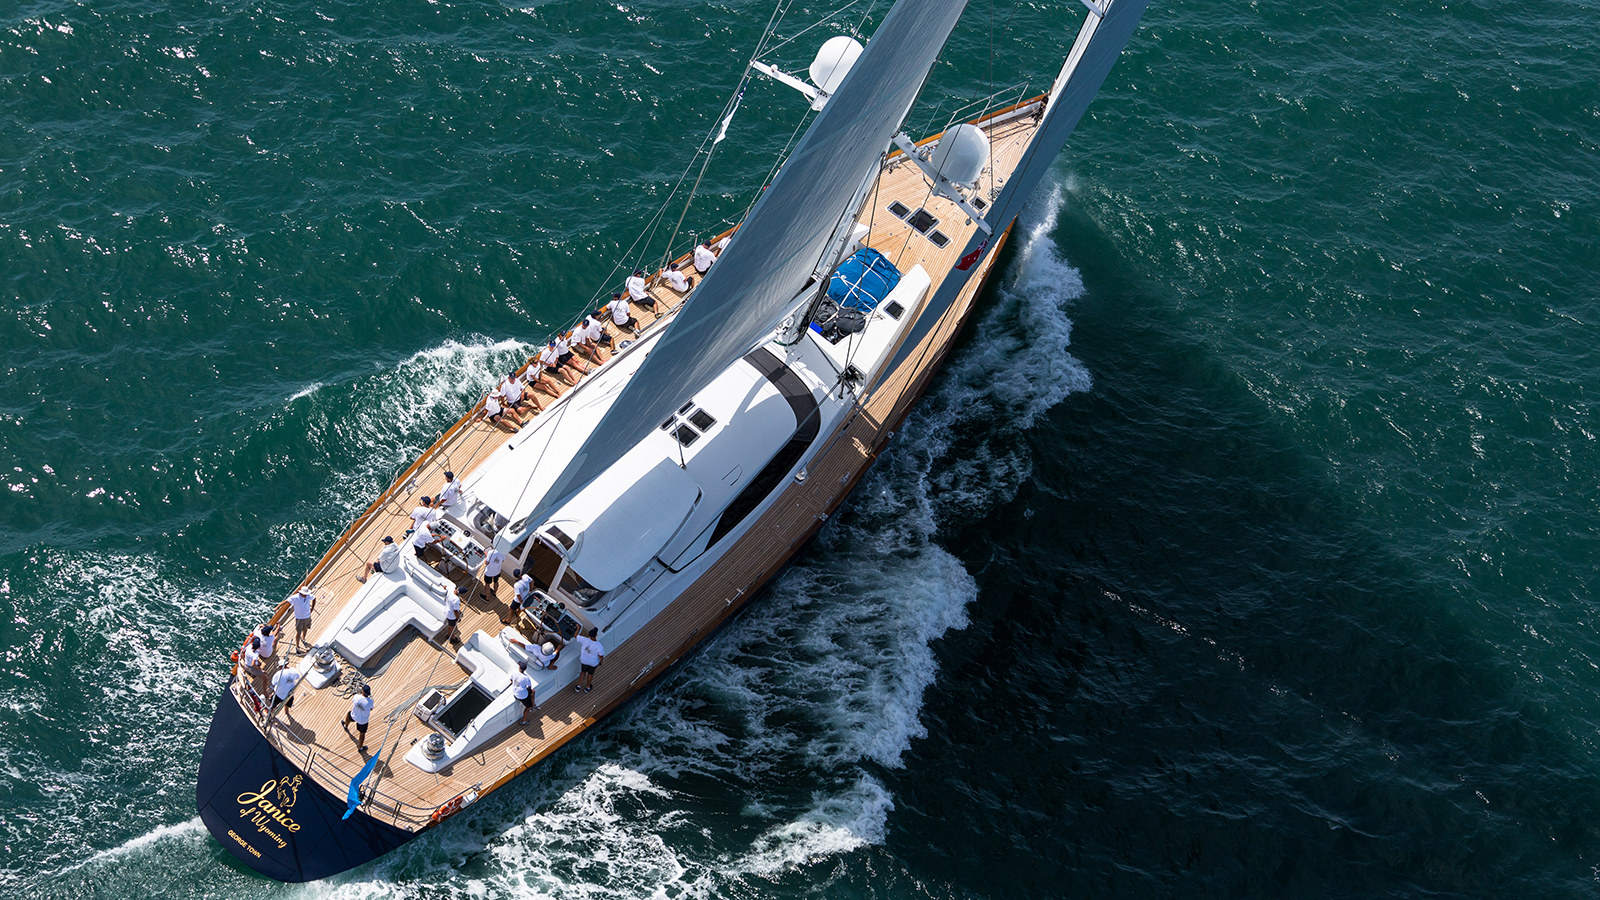 janice-of-wyoming-is-one-of-the-sailing-yachts-hoping-to-win-the-2018-new-zealand-millennium-cup